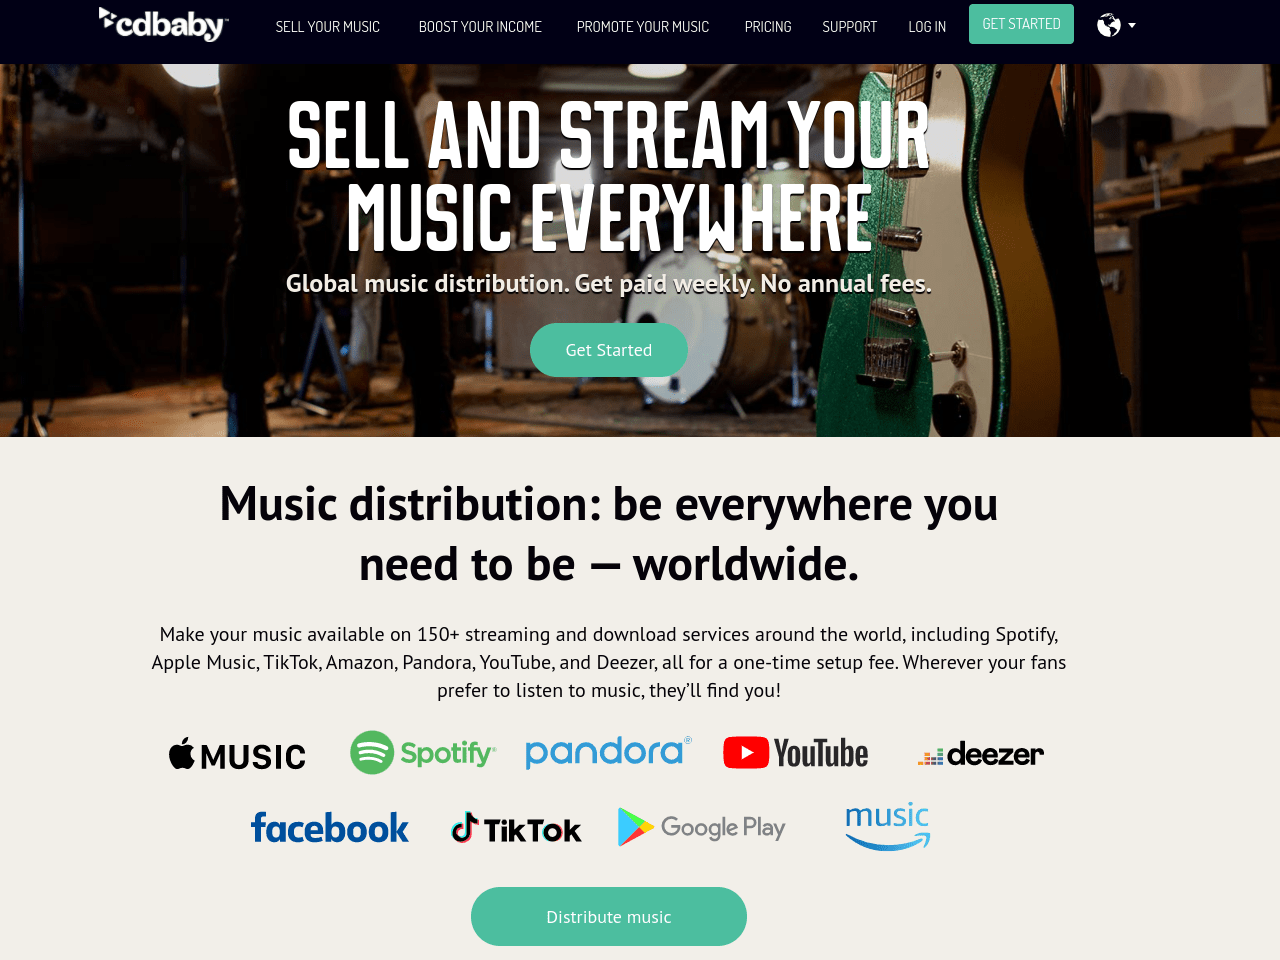 CD Baby Digital Music Distribution - Sell Promote Your Music